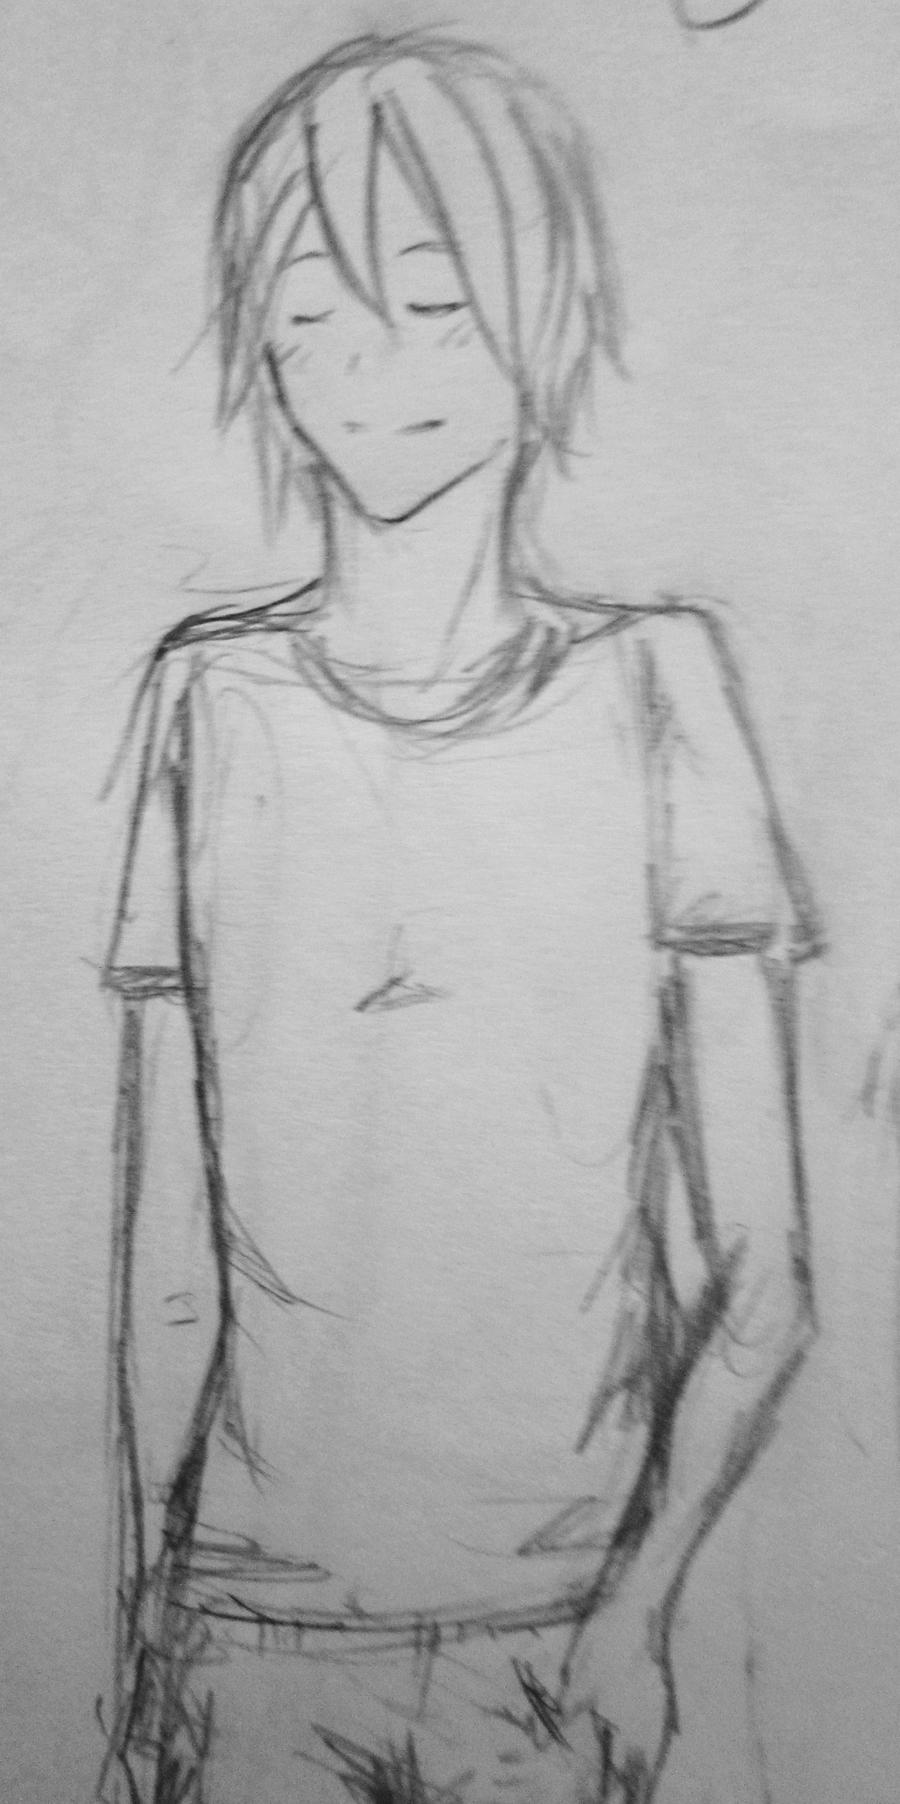 Quick Sketch - Standing Male by RiceBalls4Me